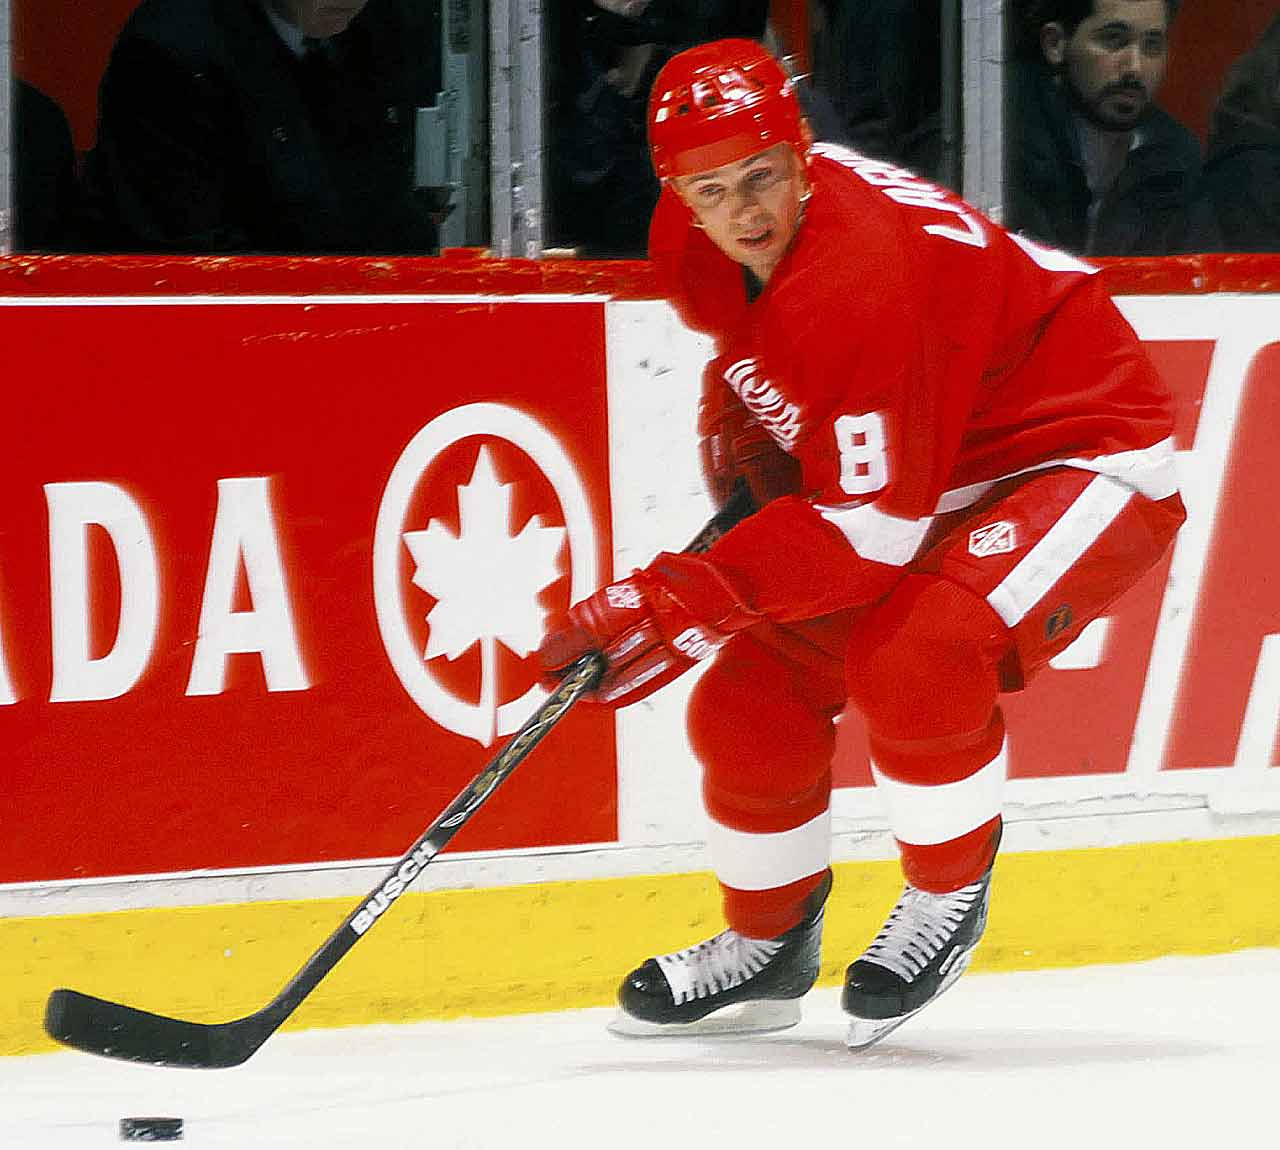 As one of the Red Wings' Russian Five, the brainy Larionov was highly respected for adapting his game to the NHL better than any former Soviet player. At 5-9, 175 pounds, he made the most of his size, and was a deft passer. He played until he was 43, winning two Olympic gold medals and four world championships. Larionov, who lives in the Detroit area, now works as a player agent and serves on the selection committee for the Hockey Hall of Fame, into which he was inducted in 2008. -- Brian Cazeneuve